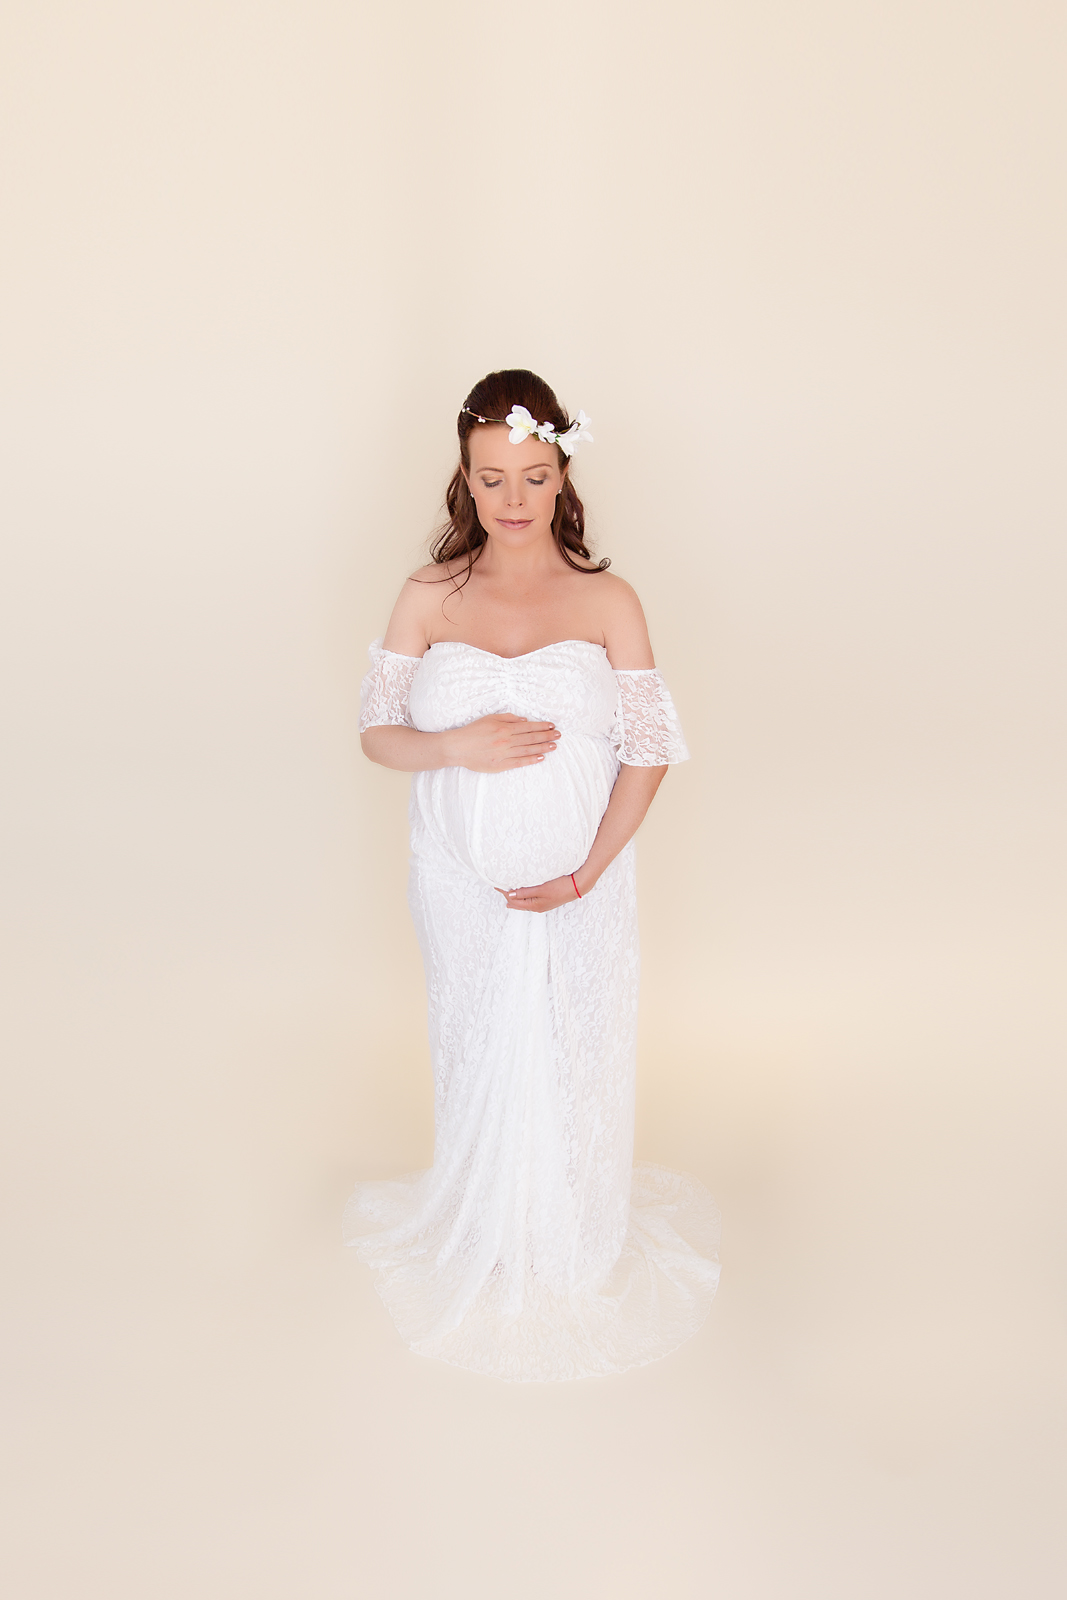 Mom-to-be in a white gown. Maternity session in Calgary, Alberta - Milashka Photography